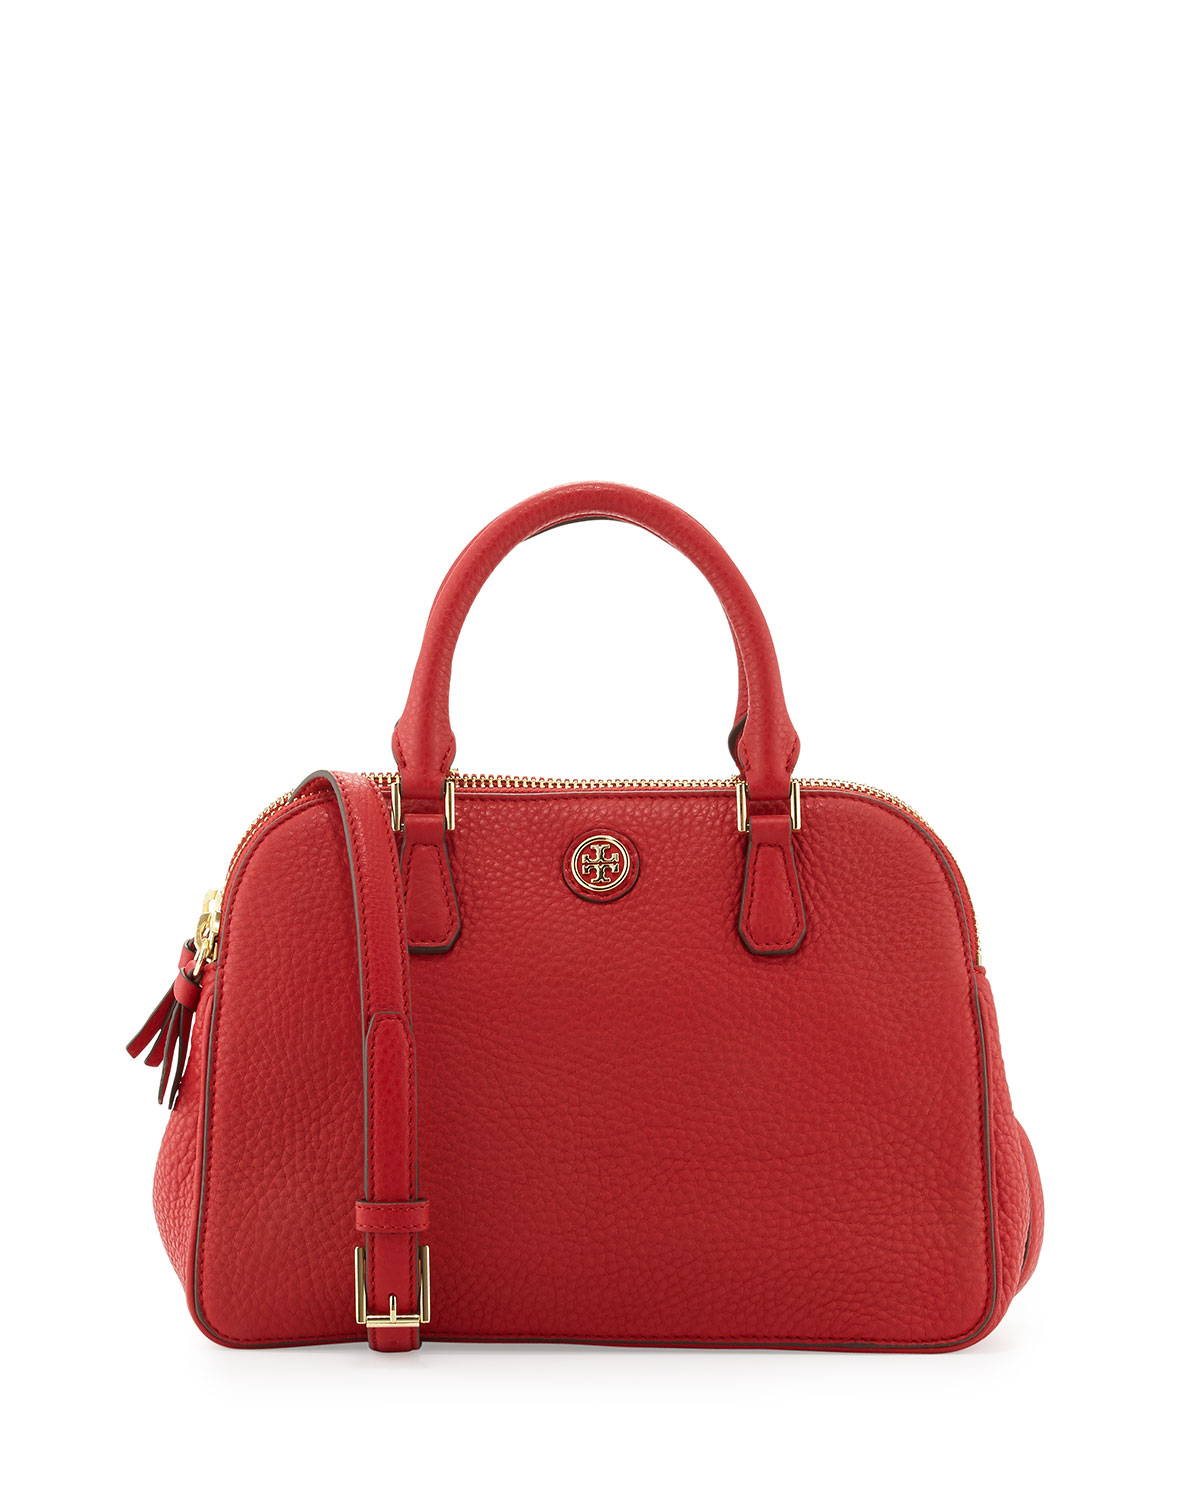 Tory burch robinson small pebbled satchel bag in red lyst